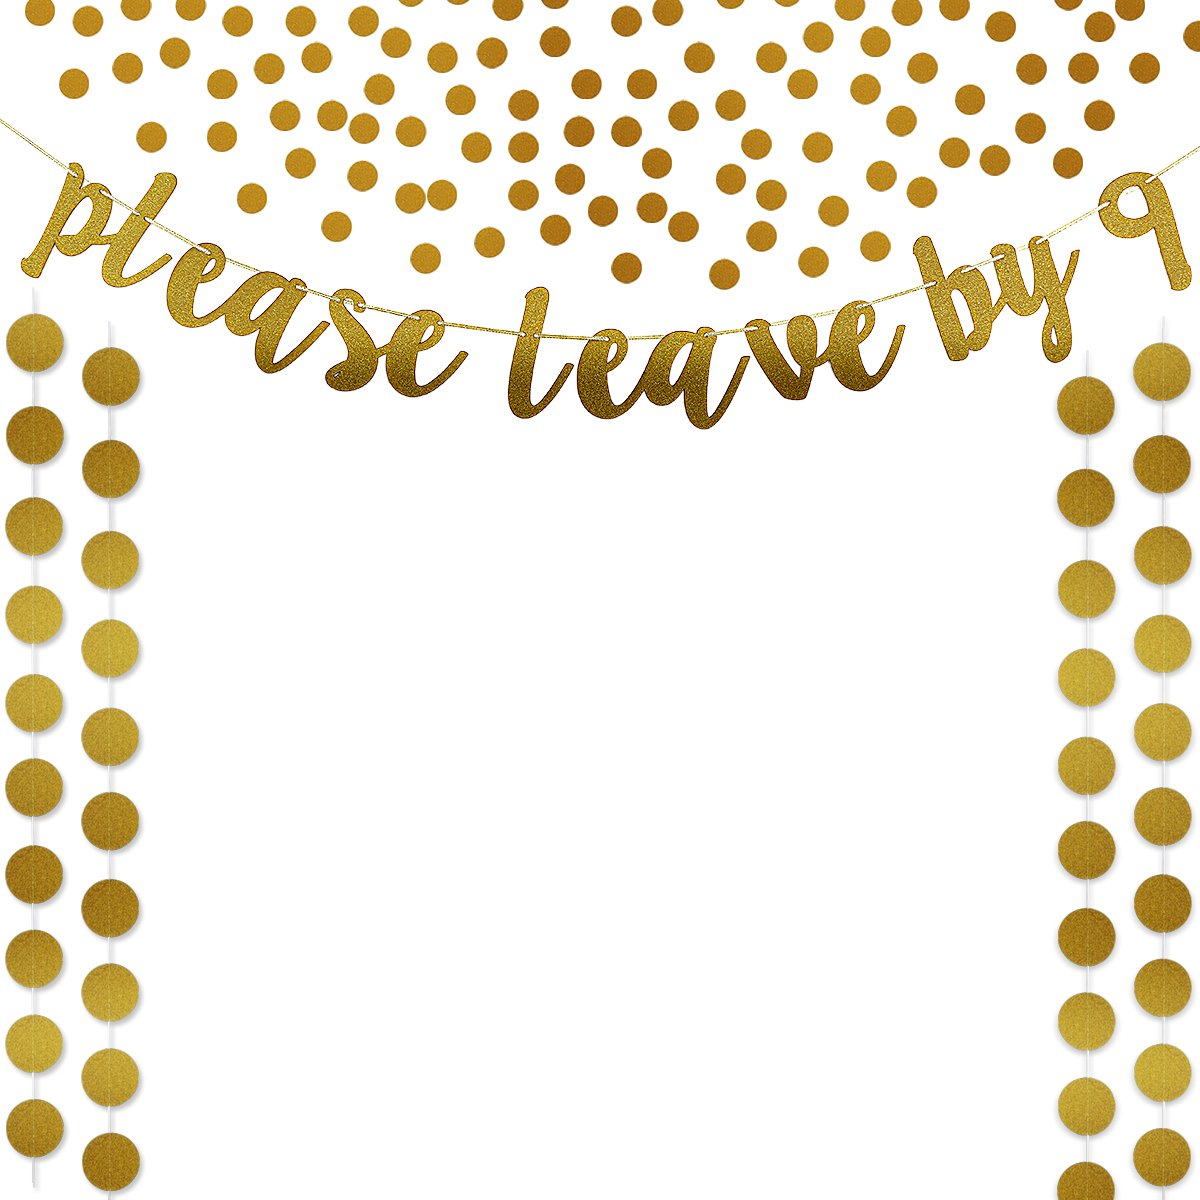 Gold Glittery Please Leave by 9 Banner,Gold Glittery Circle Dots Garland (25Pcs Circle Dots) and Gold Glittery Circle Dots Confetti,Bachelorette Wedding Party Decoration Supplies